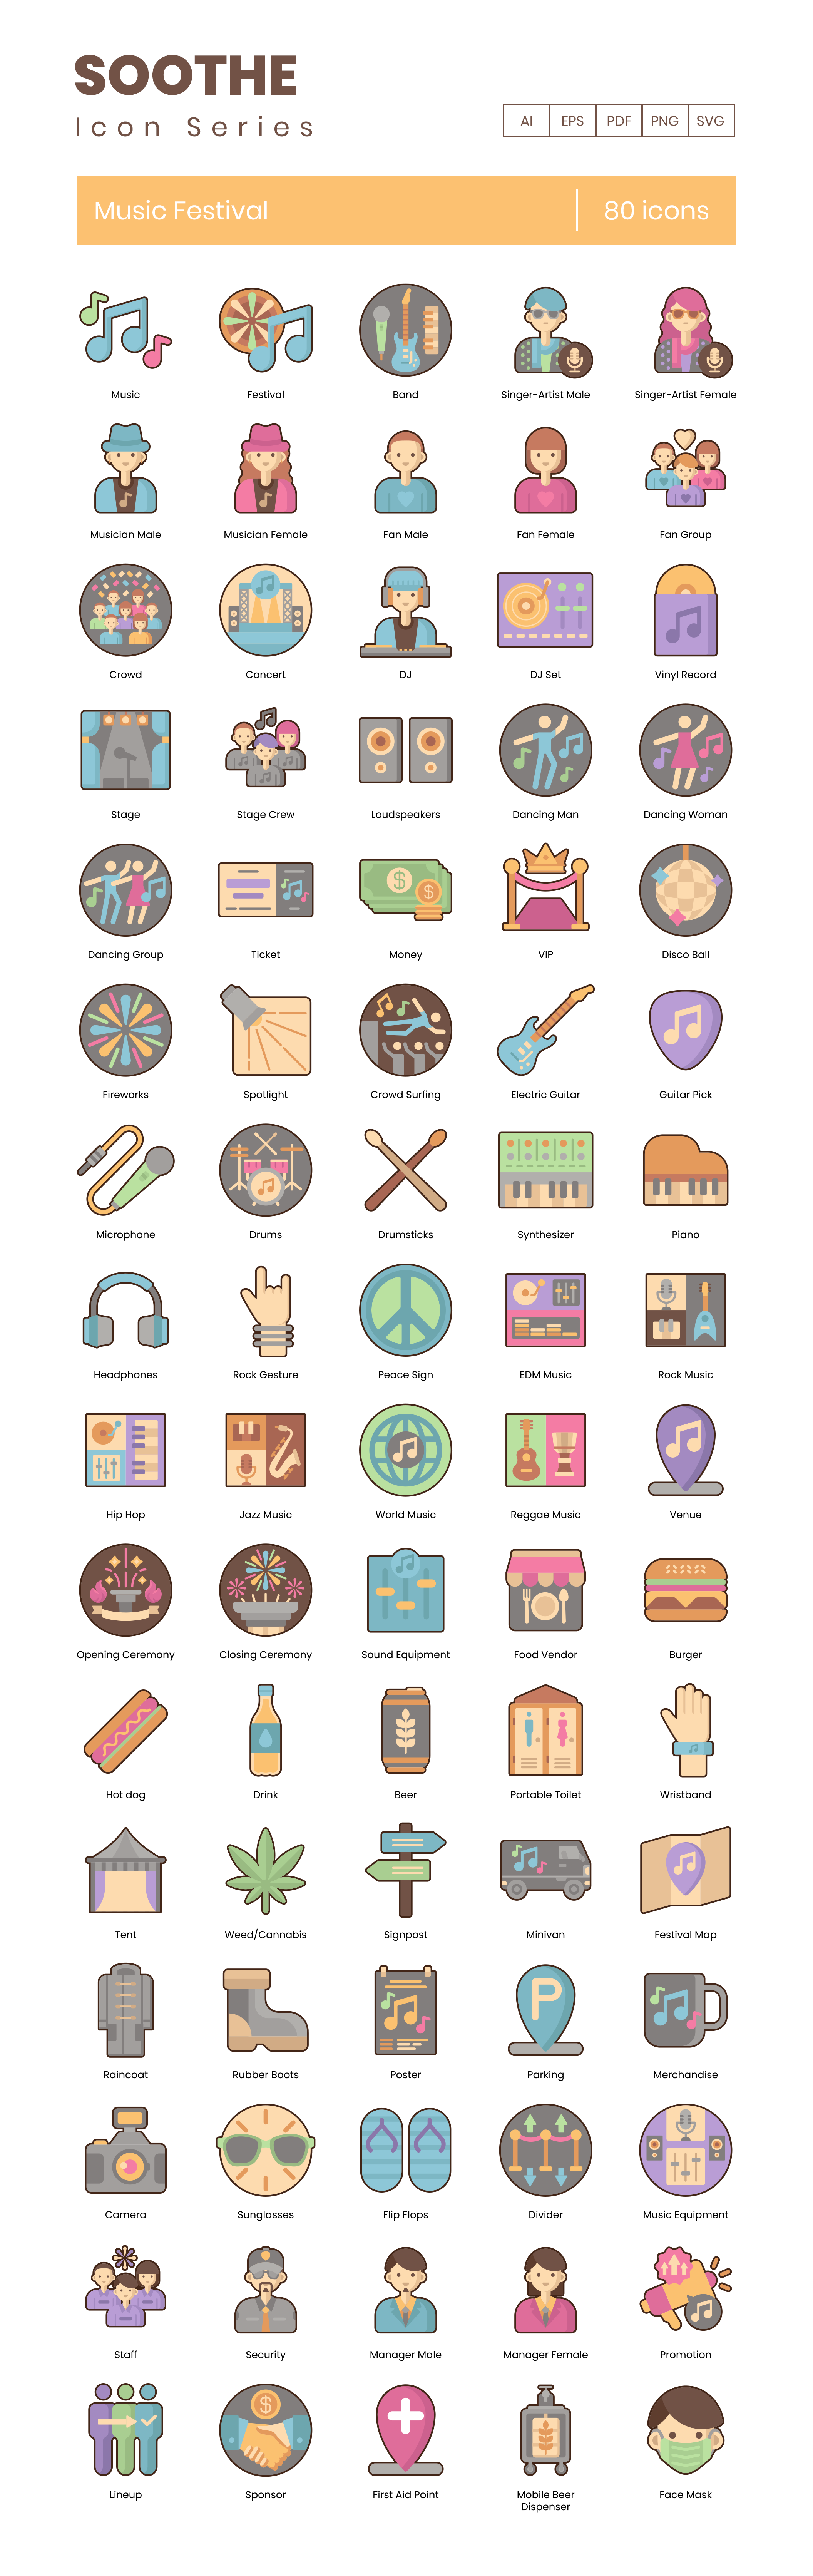 Music Festival Vector Icons Preview Image